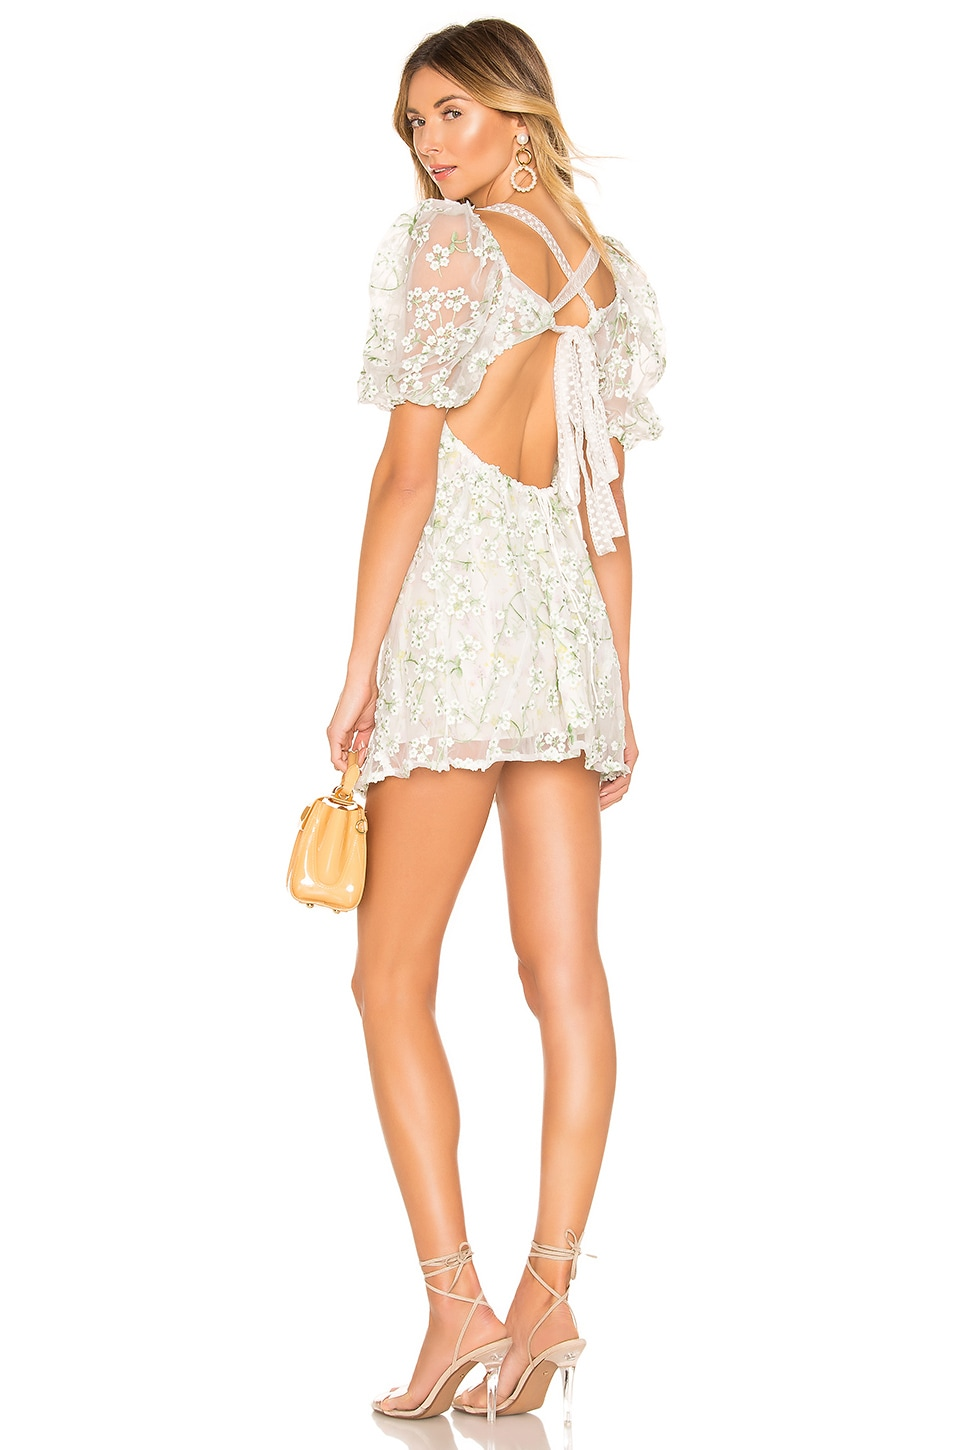 For Love & Lemons Eclair Mini Dress in Ivory Floral